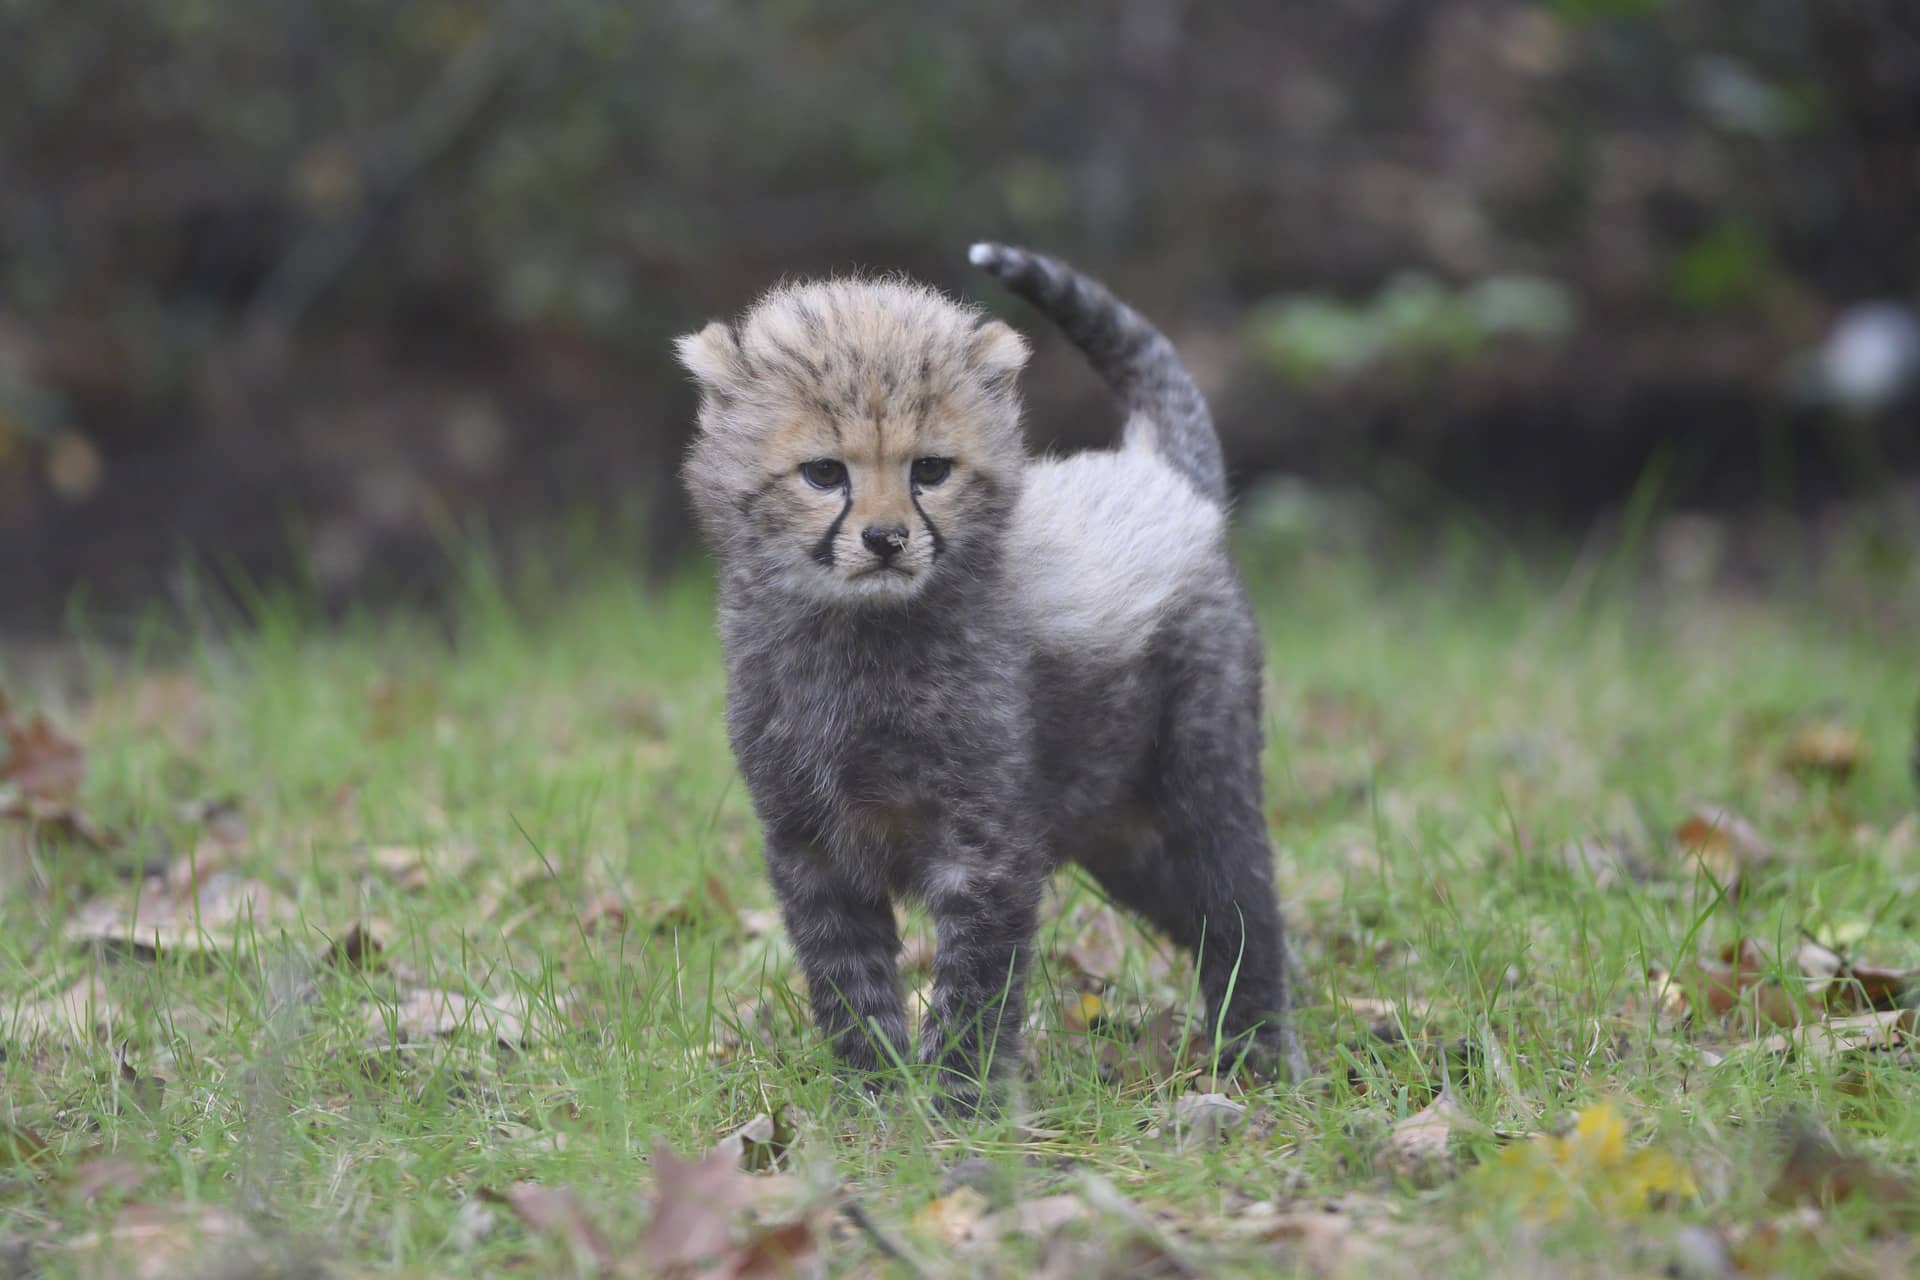 Baby cheetah picture